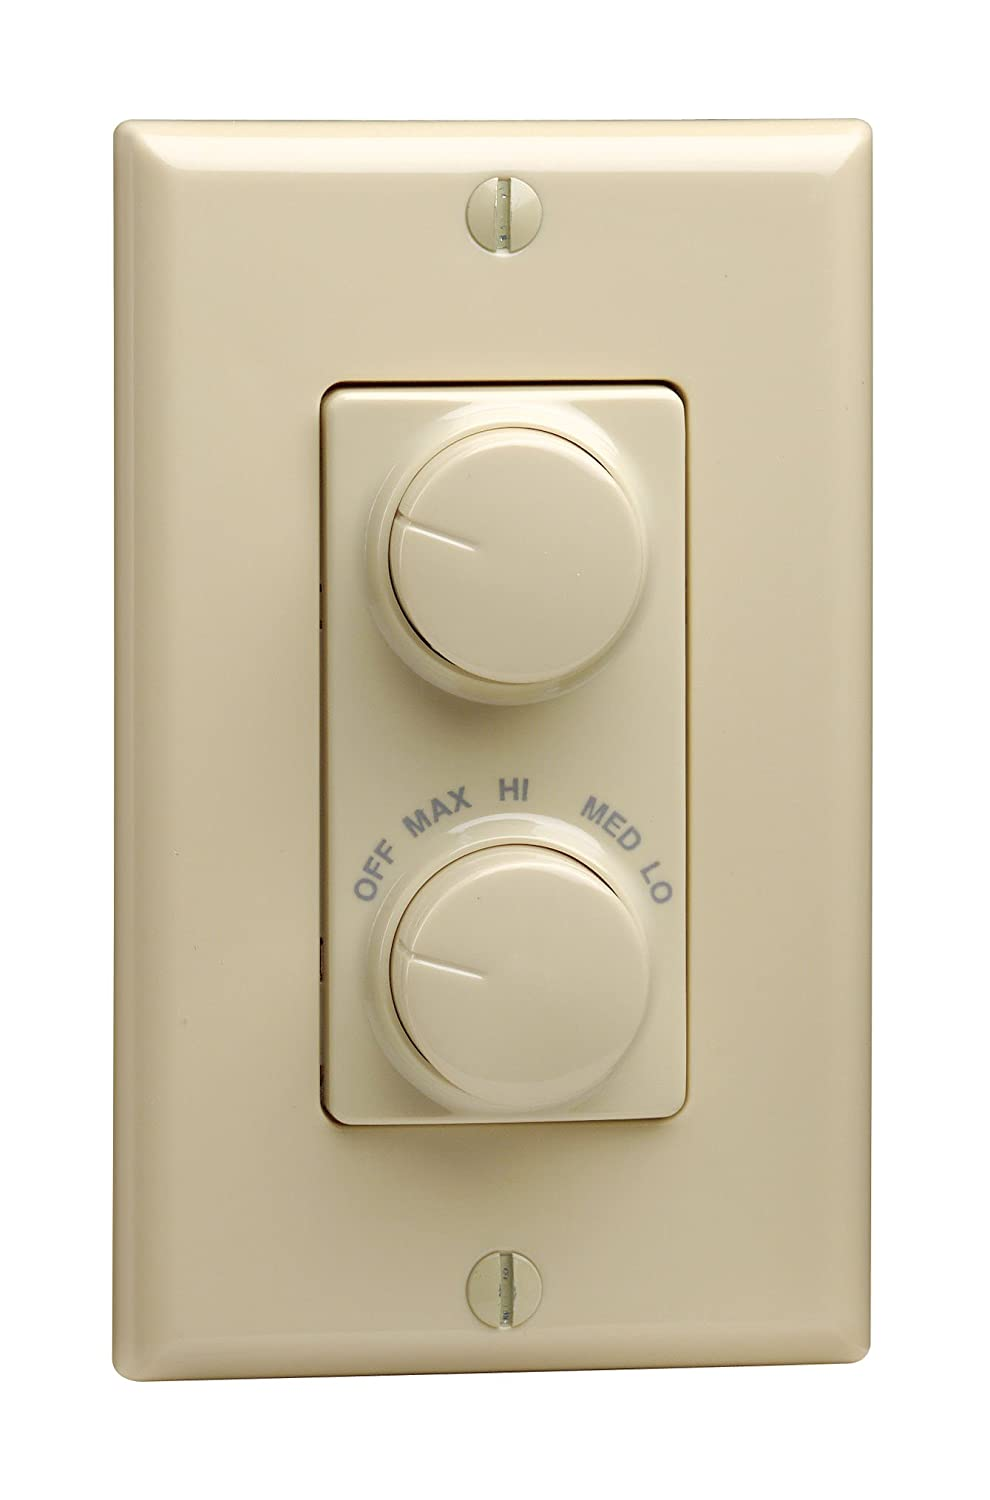 Plate 1.5 A 300 W 120 V Leviton RTD01-10I Illumatech R21-Electro-Mechanical Fan Speed Control with Dimmer Ivory